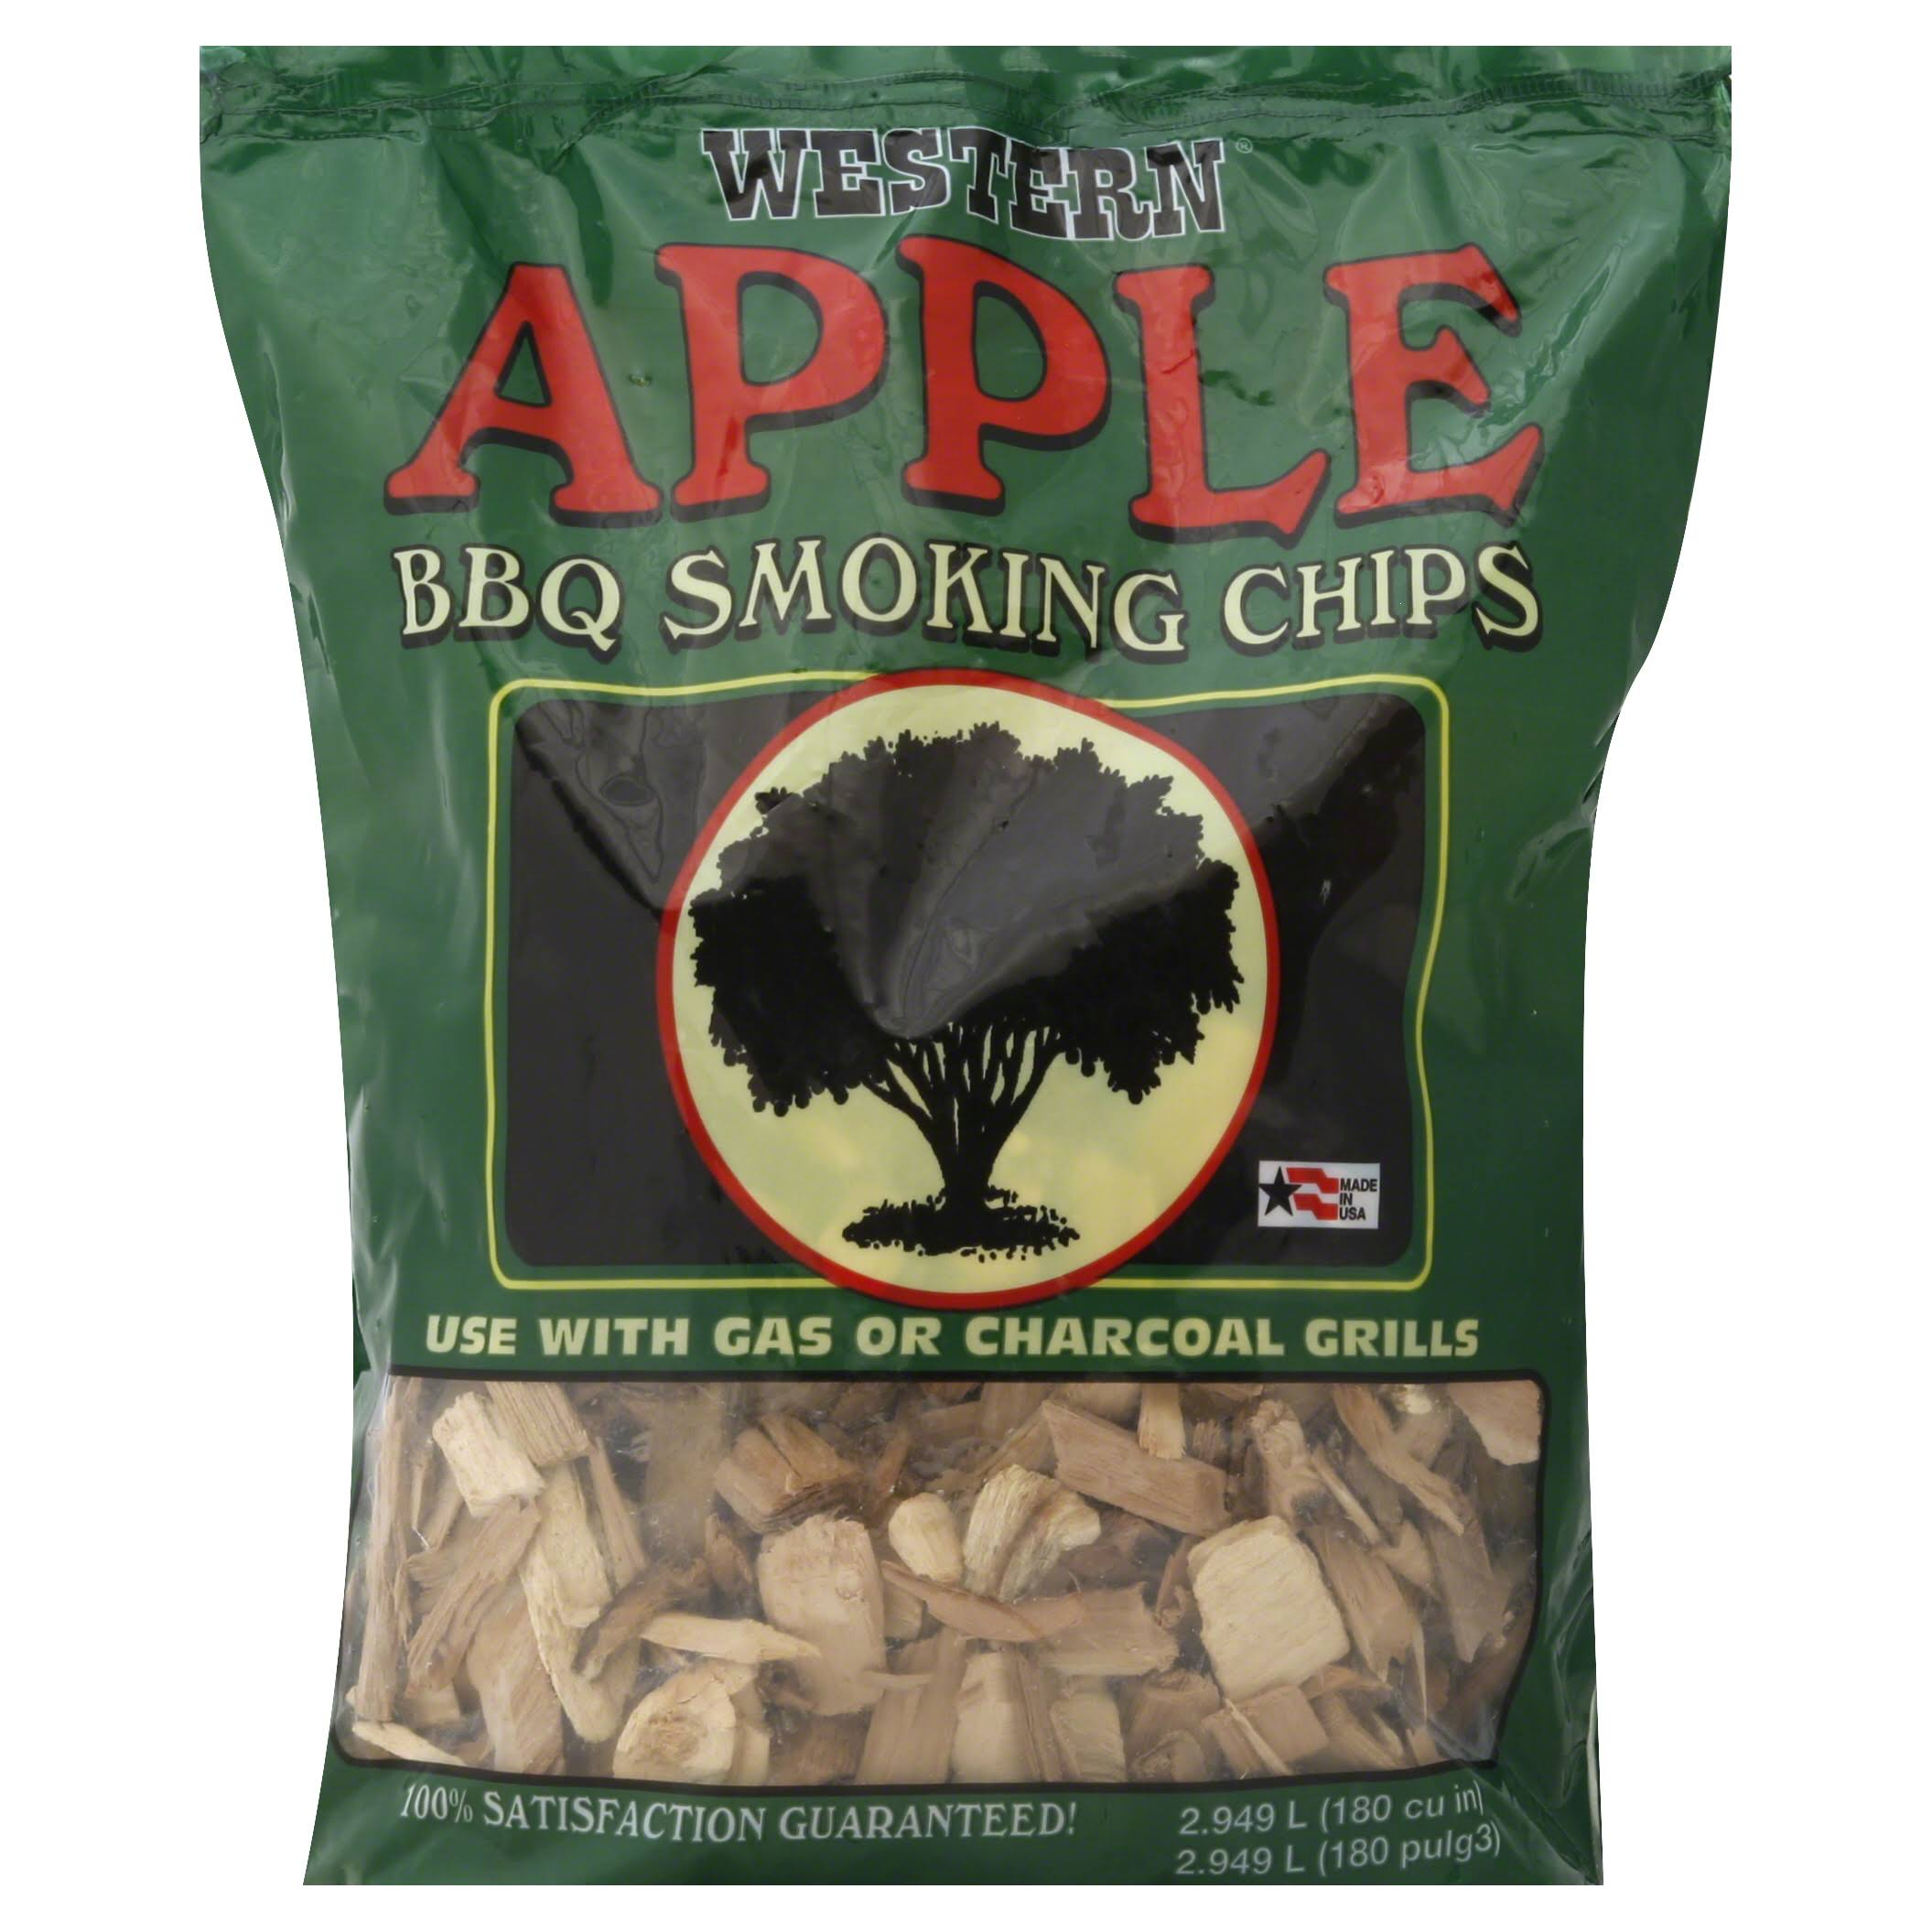 Western BBQ Smoking Chips - Apple, 2lbs